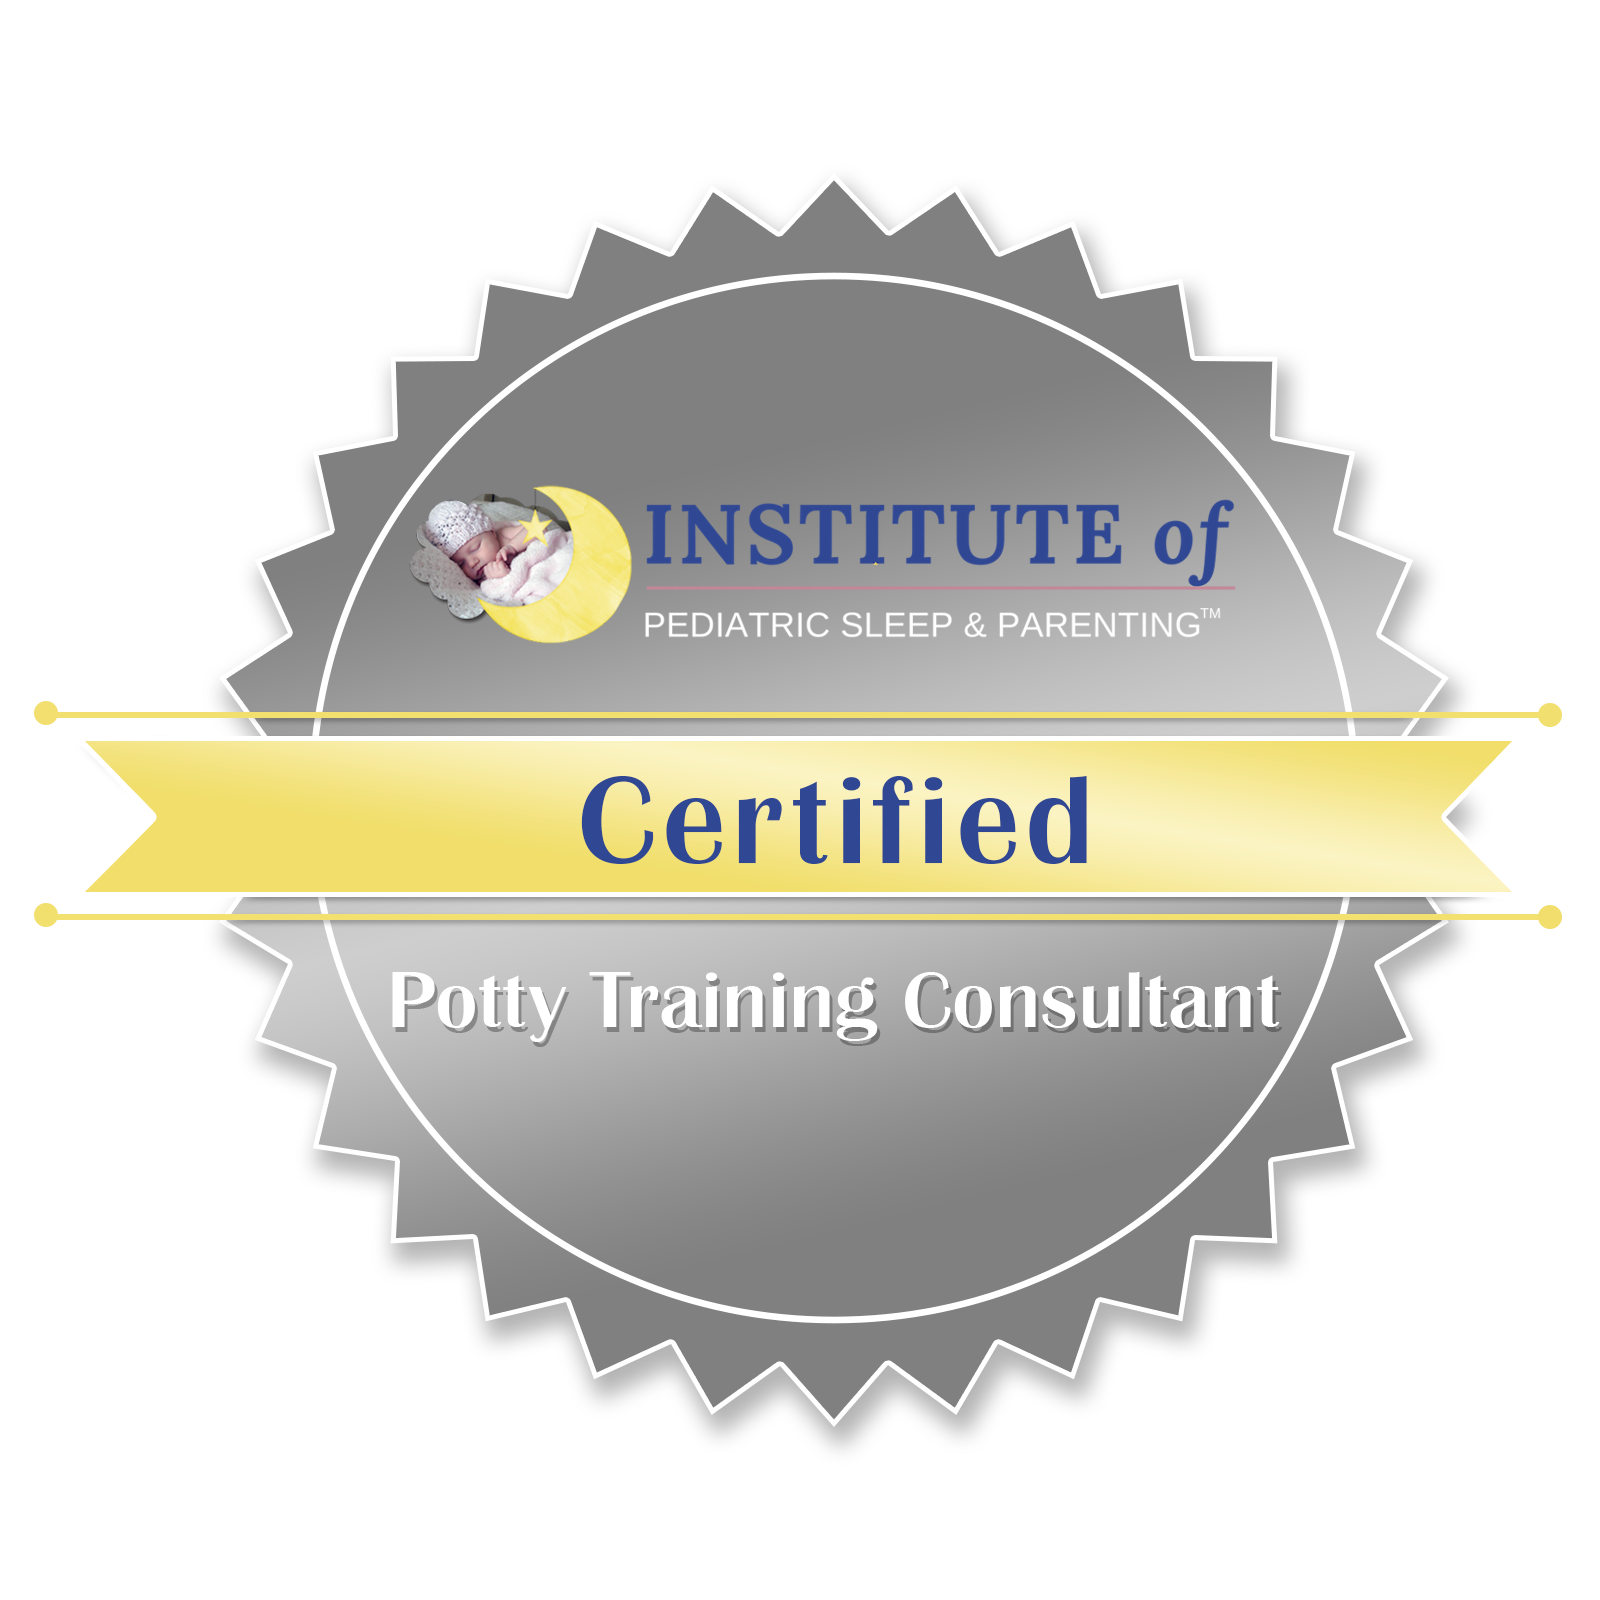 potty training consultant certification